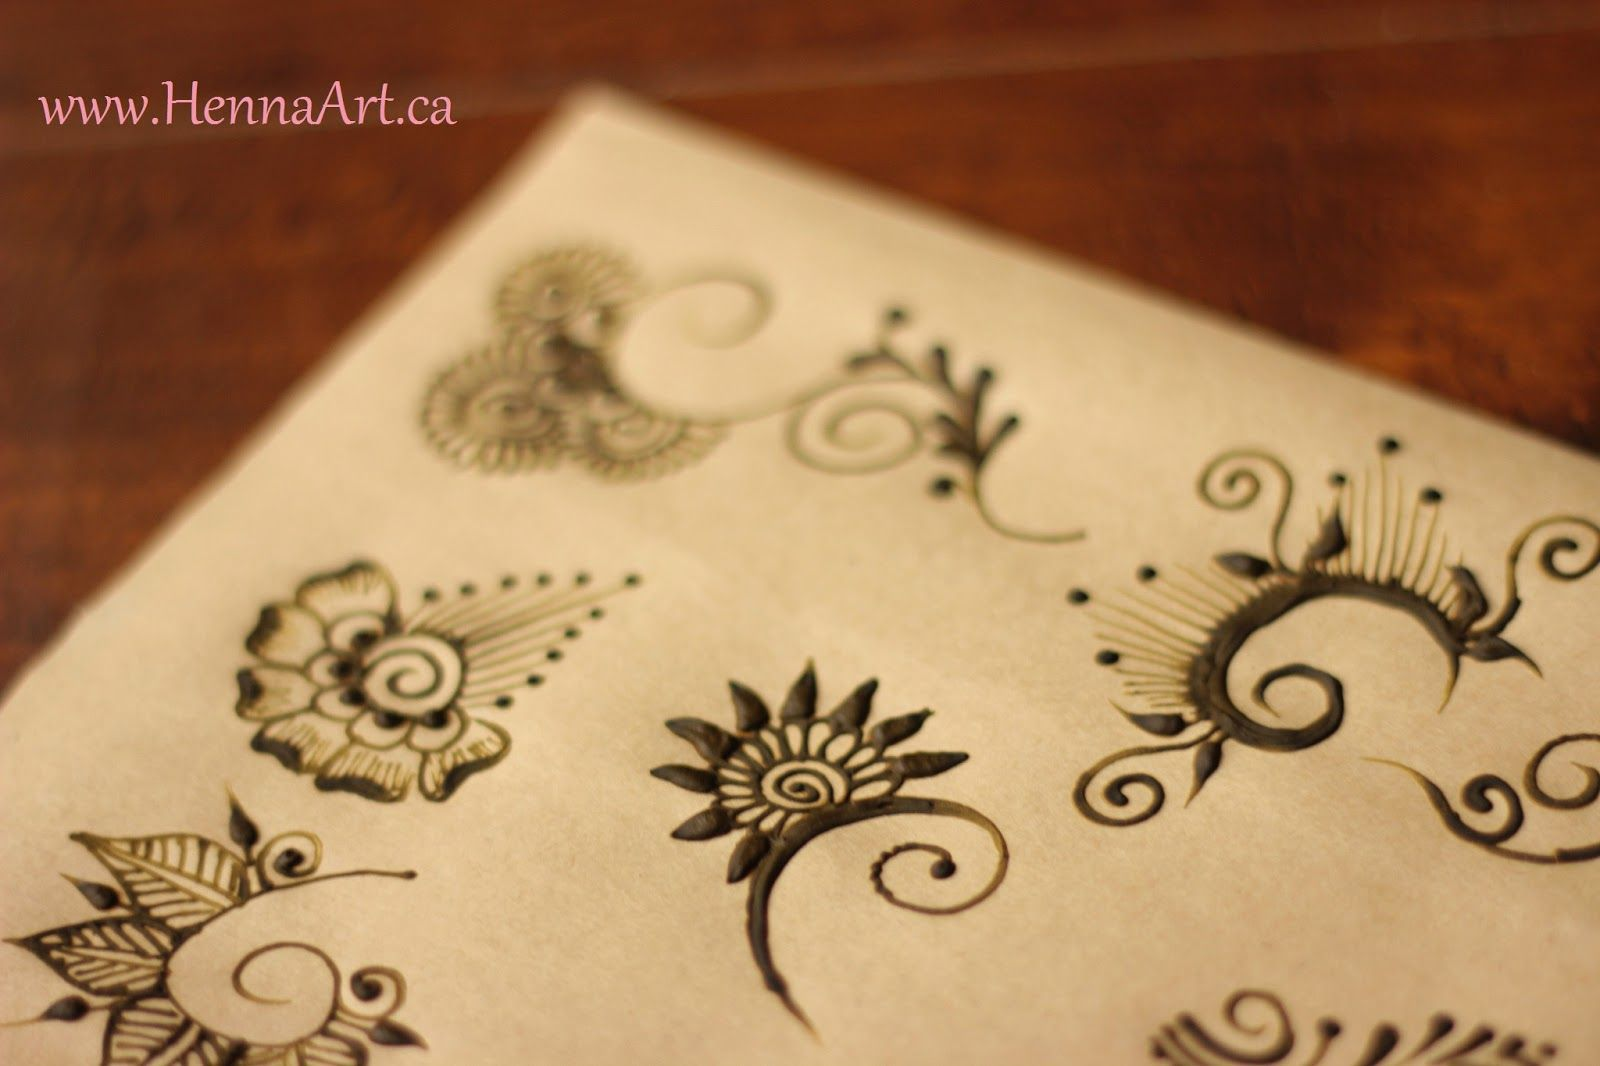 Easy Mehndi Patterns On Paper : Slow henna designs hennas and mehndi